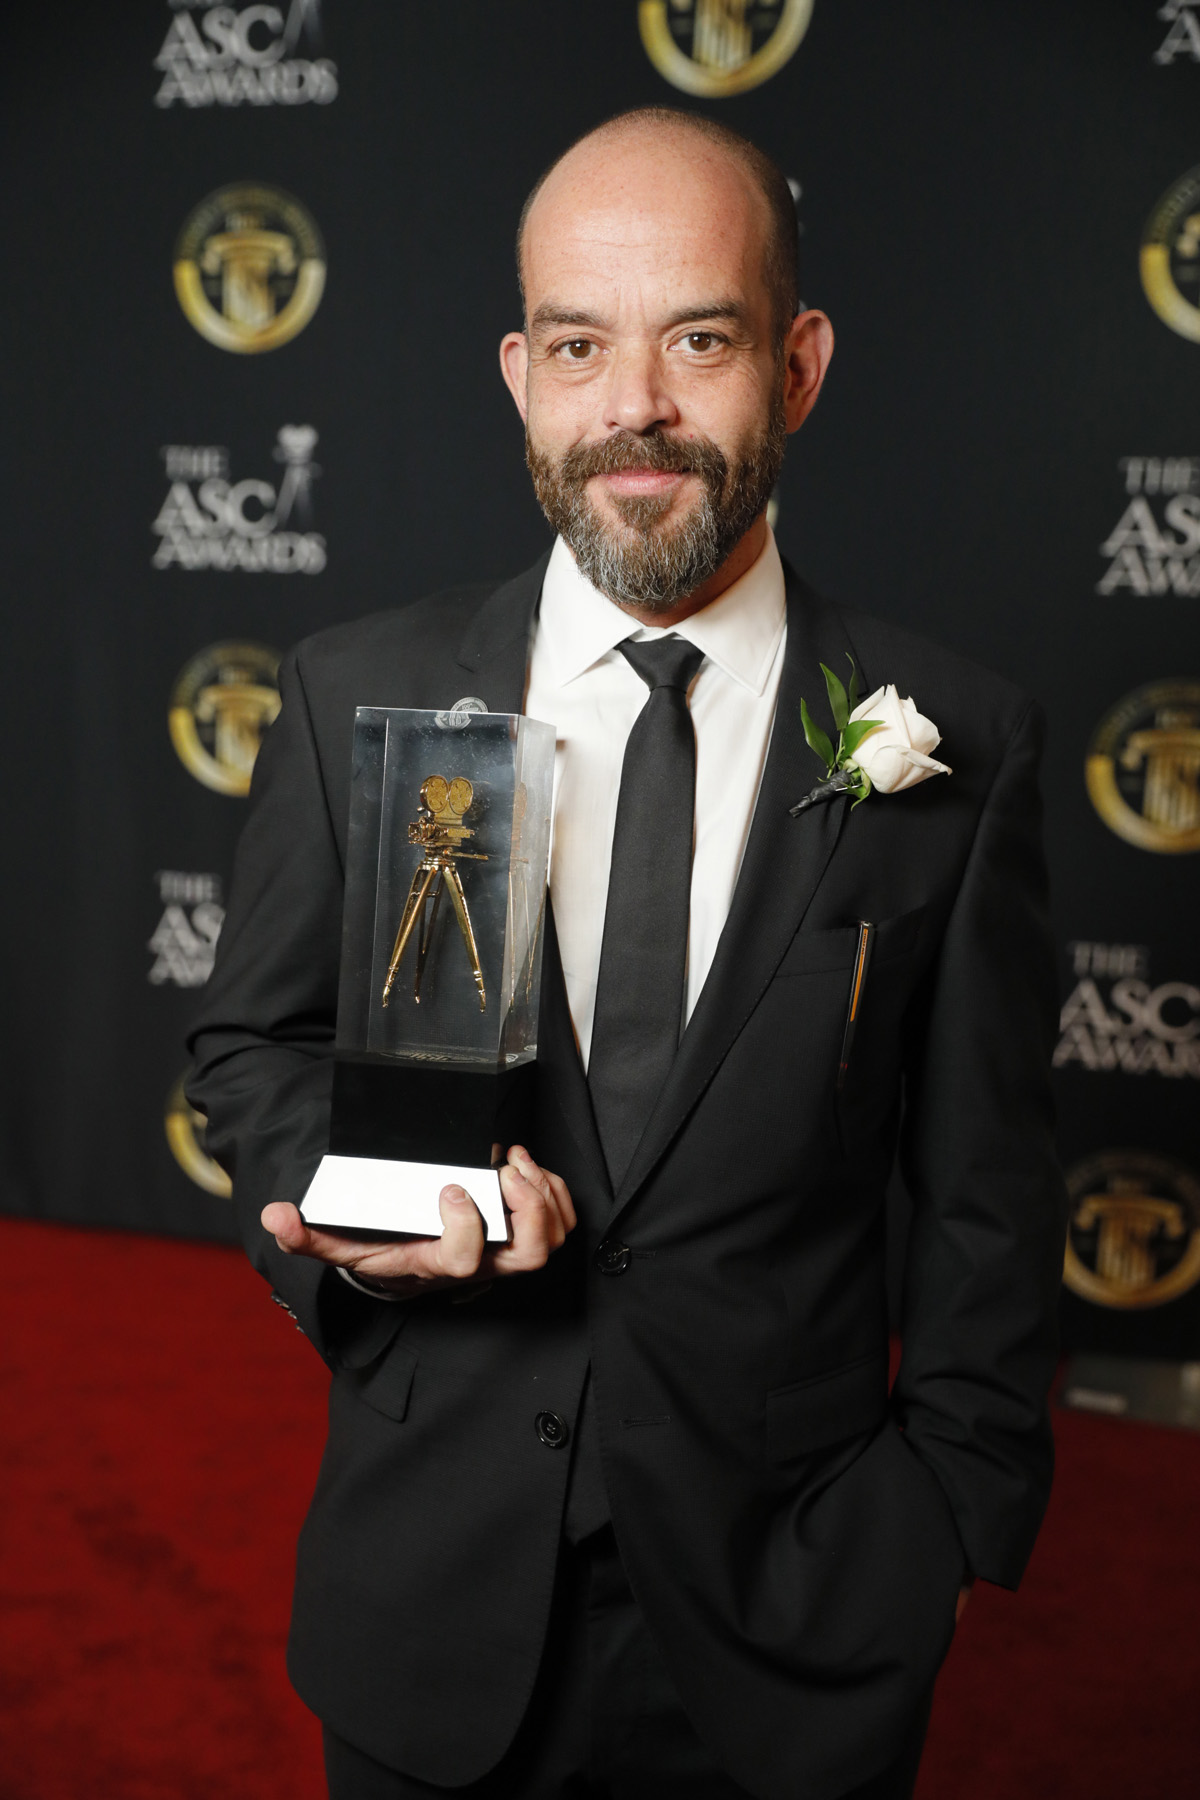 Adriano Goldman BSC ASC took the ASC accolade for <em>The Crown</em>